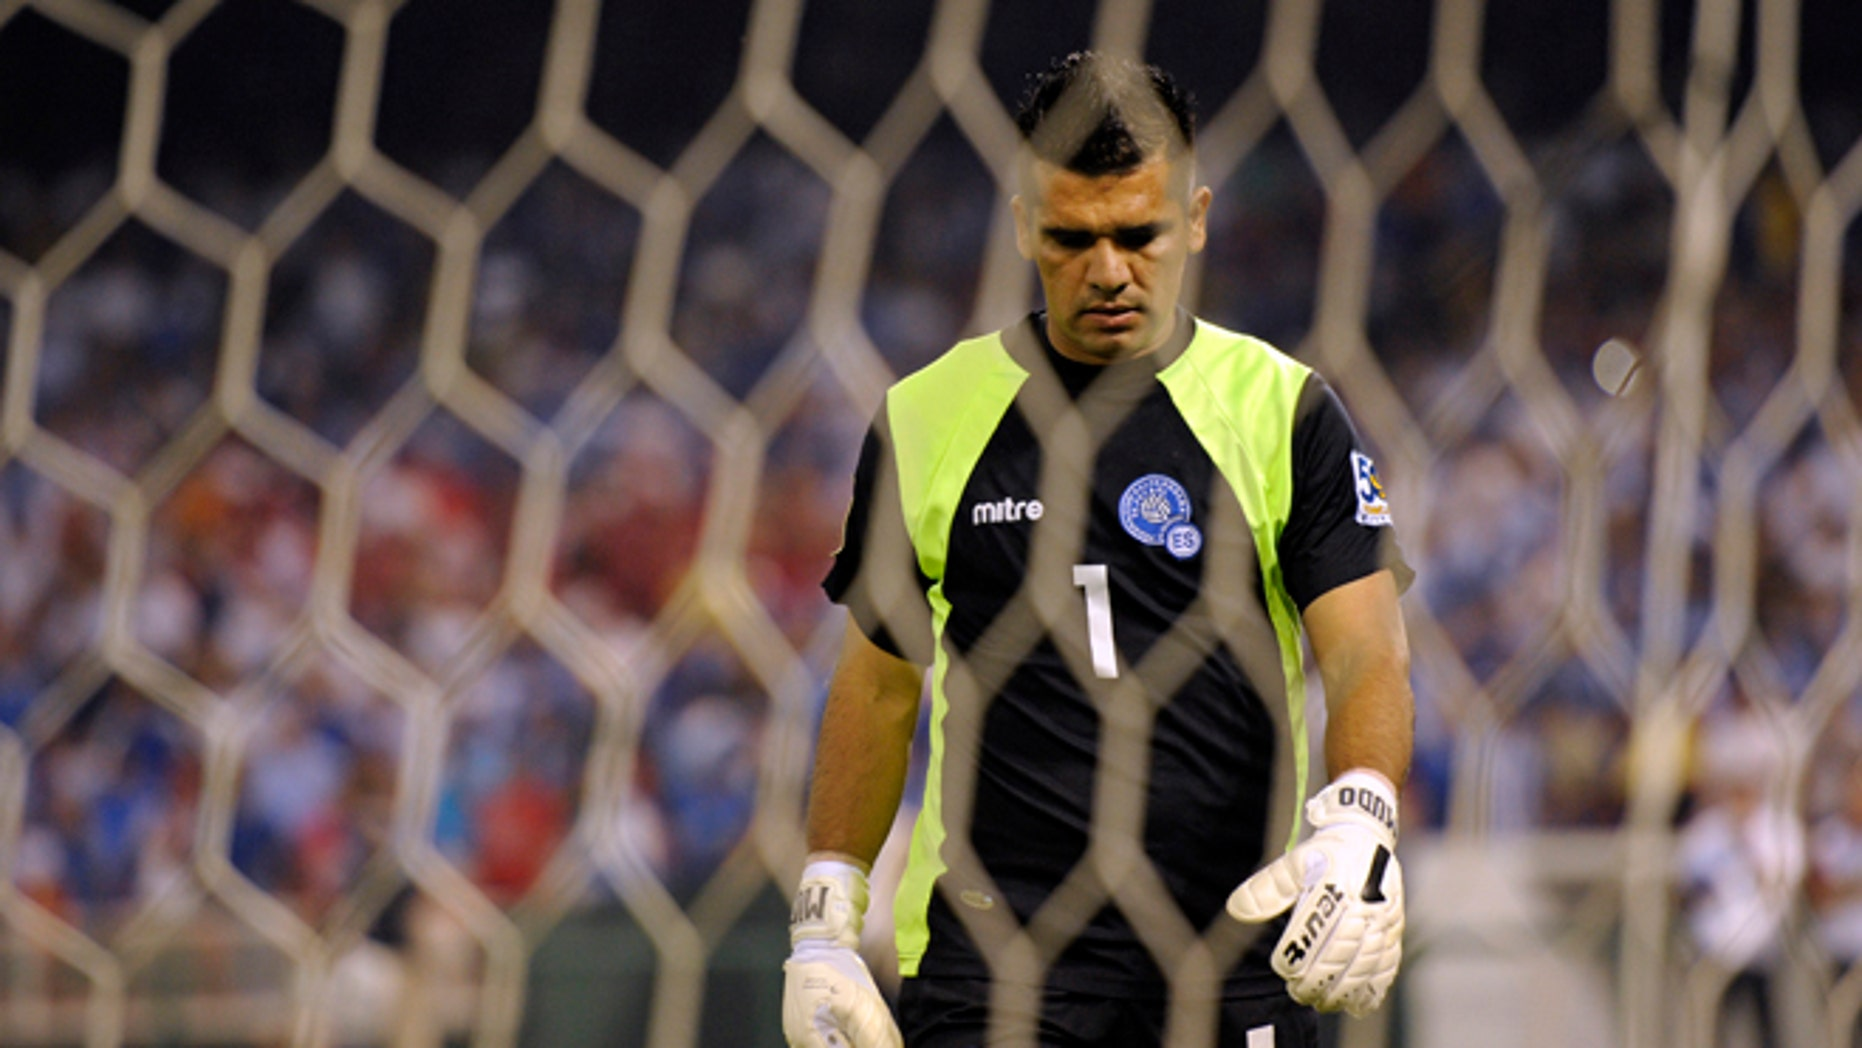 FILE - In this June 19, 2011 file photo, El Salvador goalkeeper Miguel Montes lowers his head after failing to stop a shot during penalty kicks in a CONCACAF Gold Cup quarterfinal soccer match against Panama at RFK Stadium in Washington. El Salvador's football federation announced on Wednesday, Aug. 21, 2013 it has suspended 22 of their players, included Montes, in an investigation into alleged match-fixing in games by the national team from 2010 to 2012. (AP Photo/Cliff Owen, File)